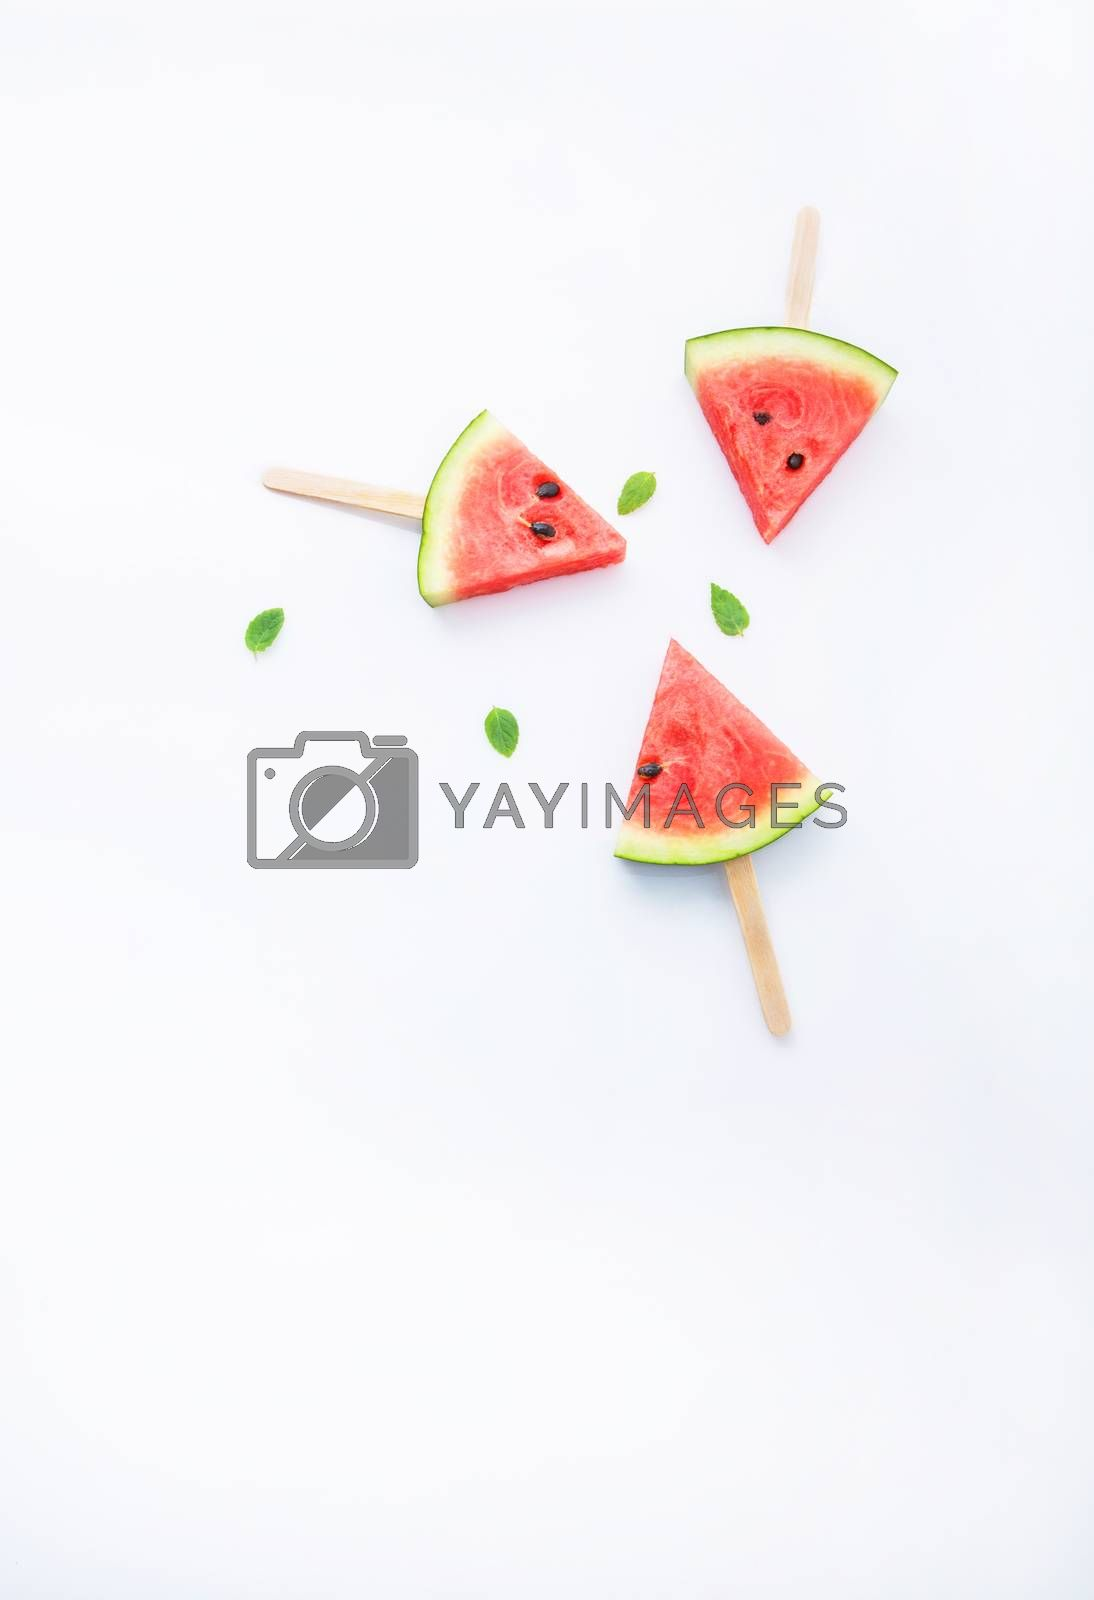 Fresh and sweet watermelon slice popsicles on white background by Bowonpat